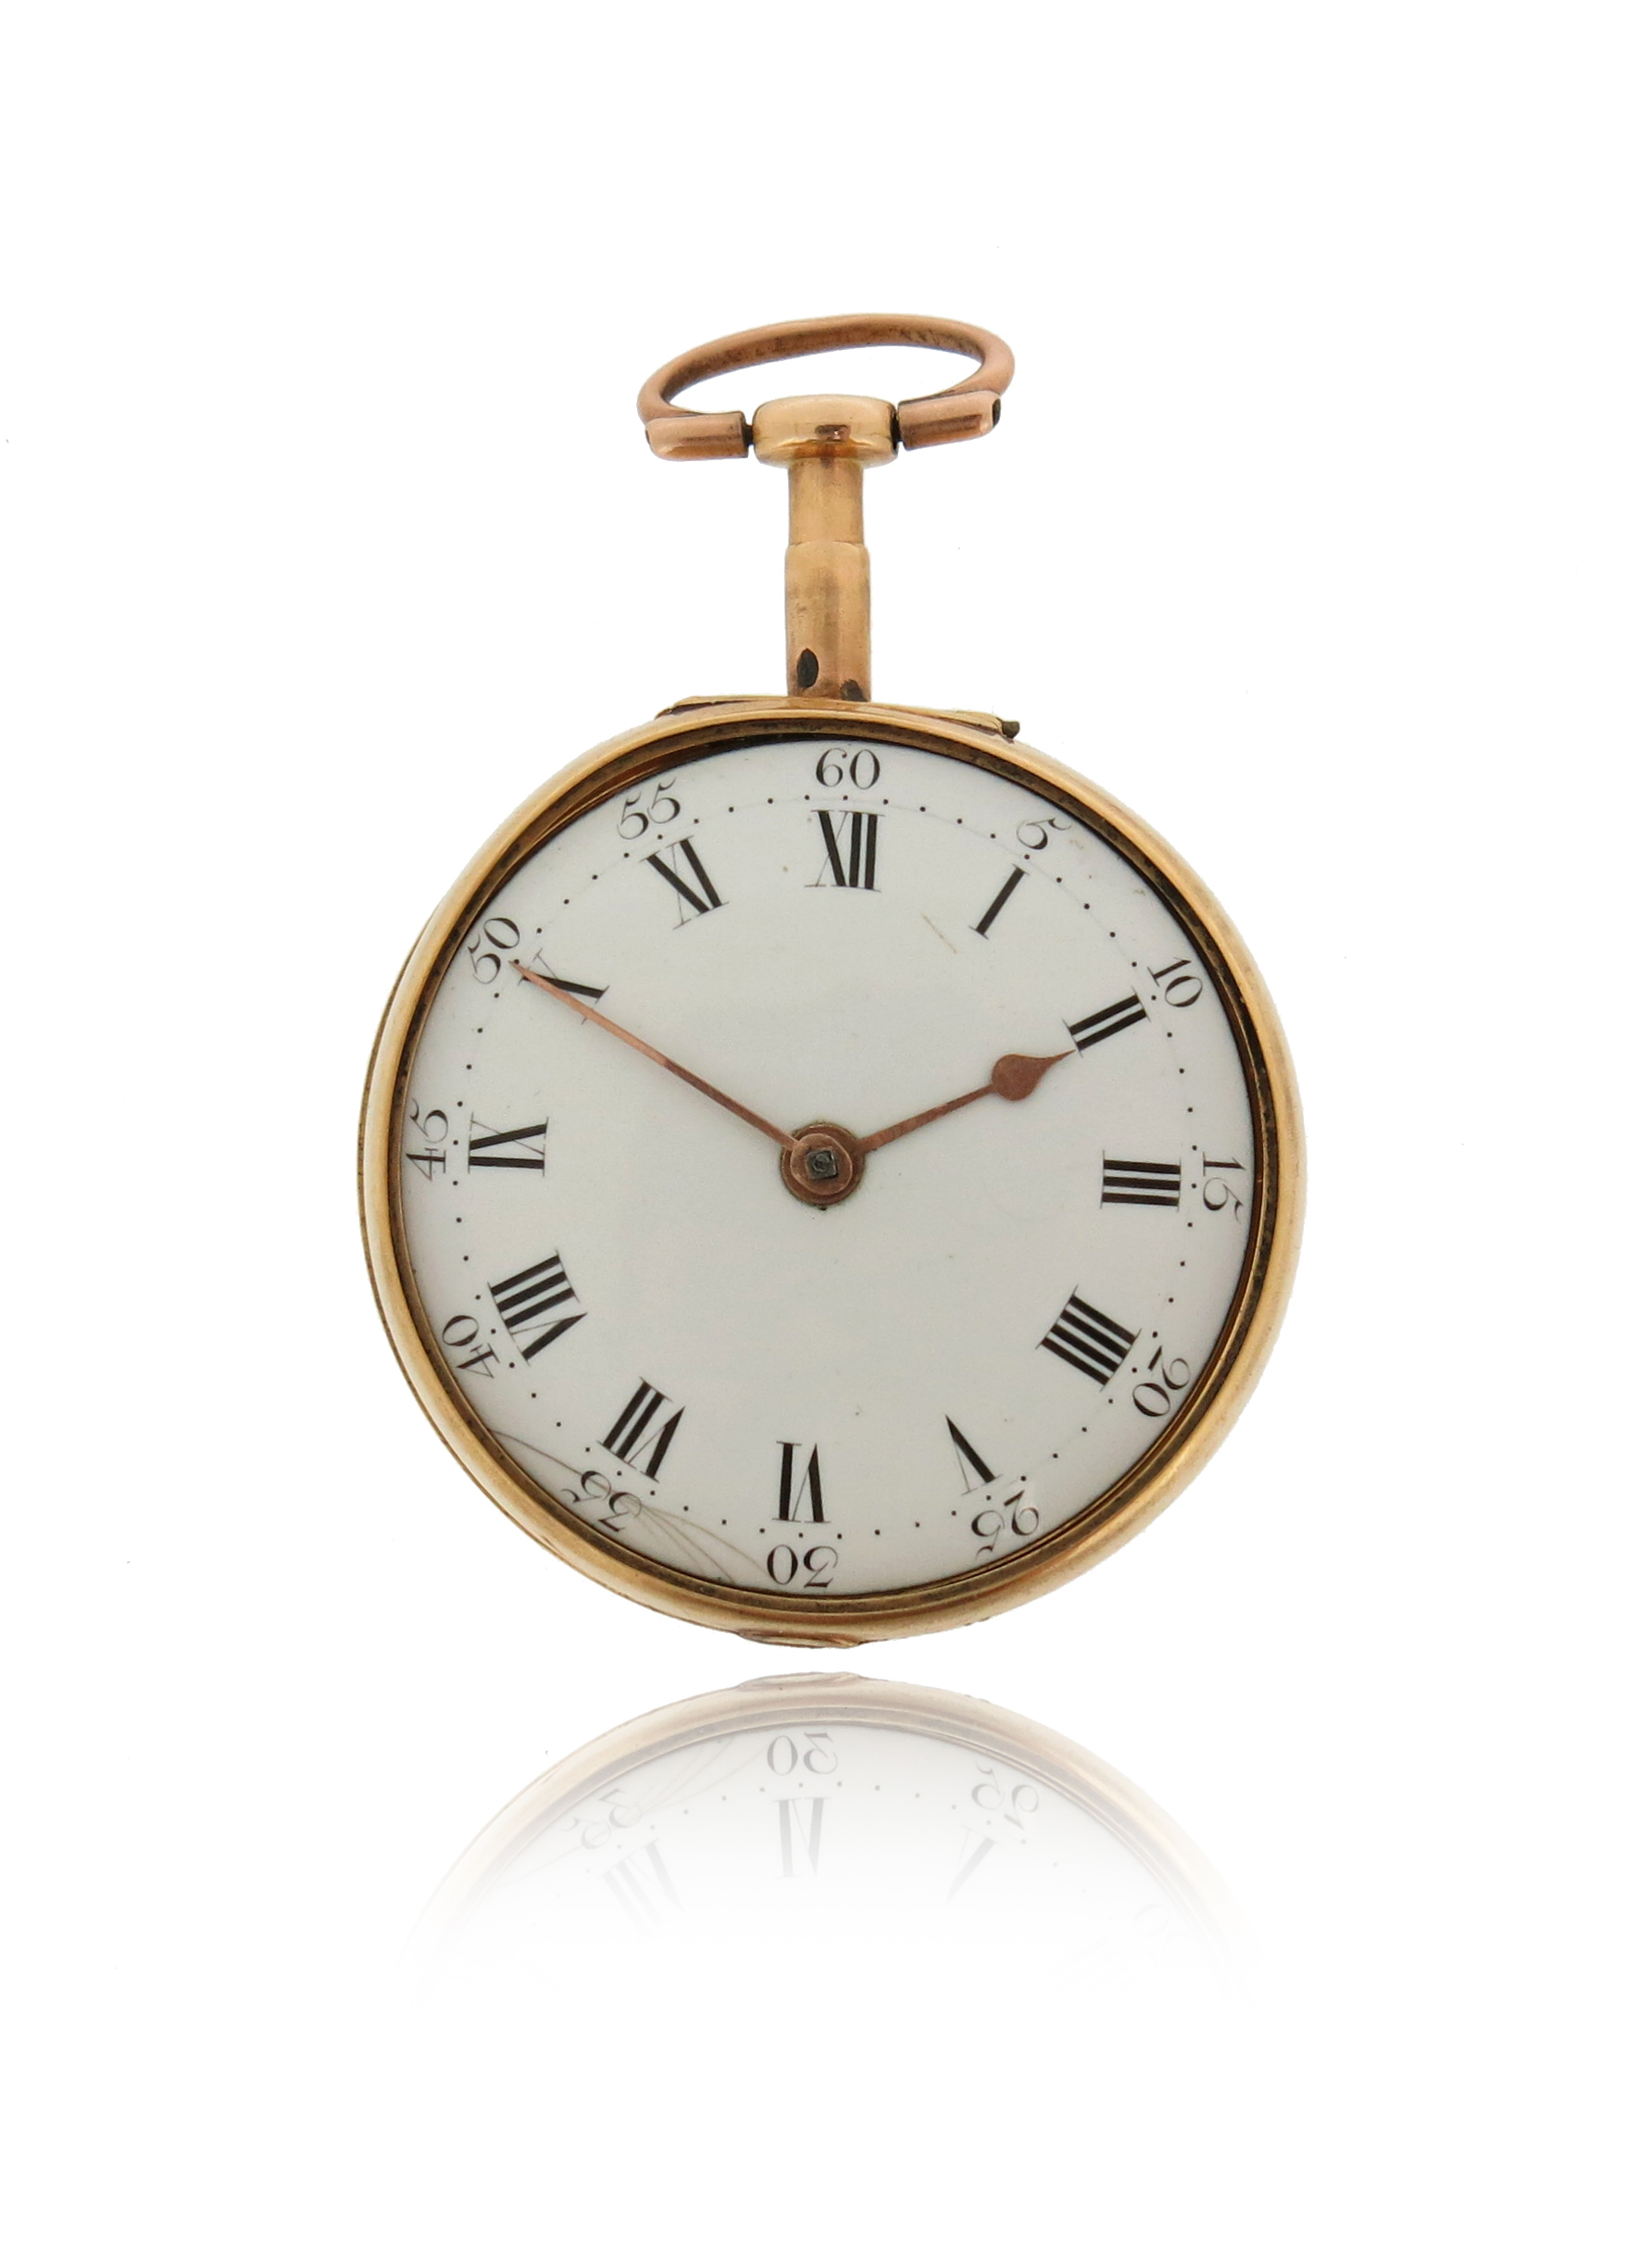 A George III Irish 18ct gold open-faced pocket watch by Sean Houston of Dublin